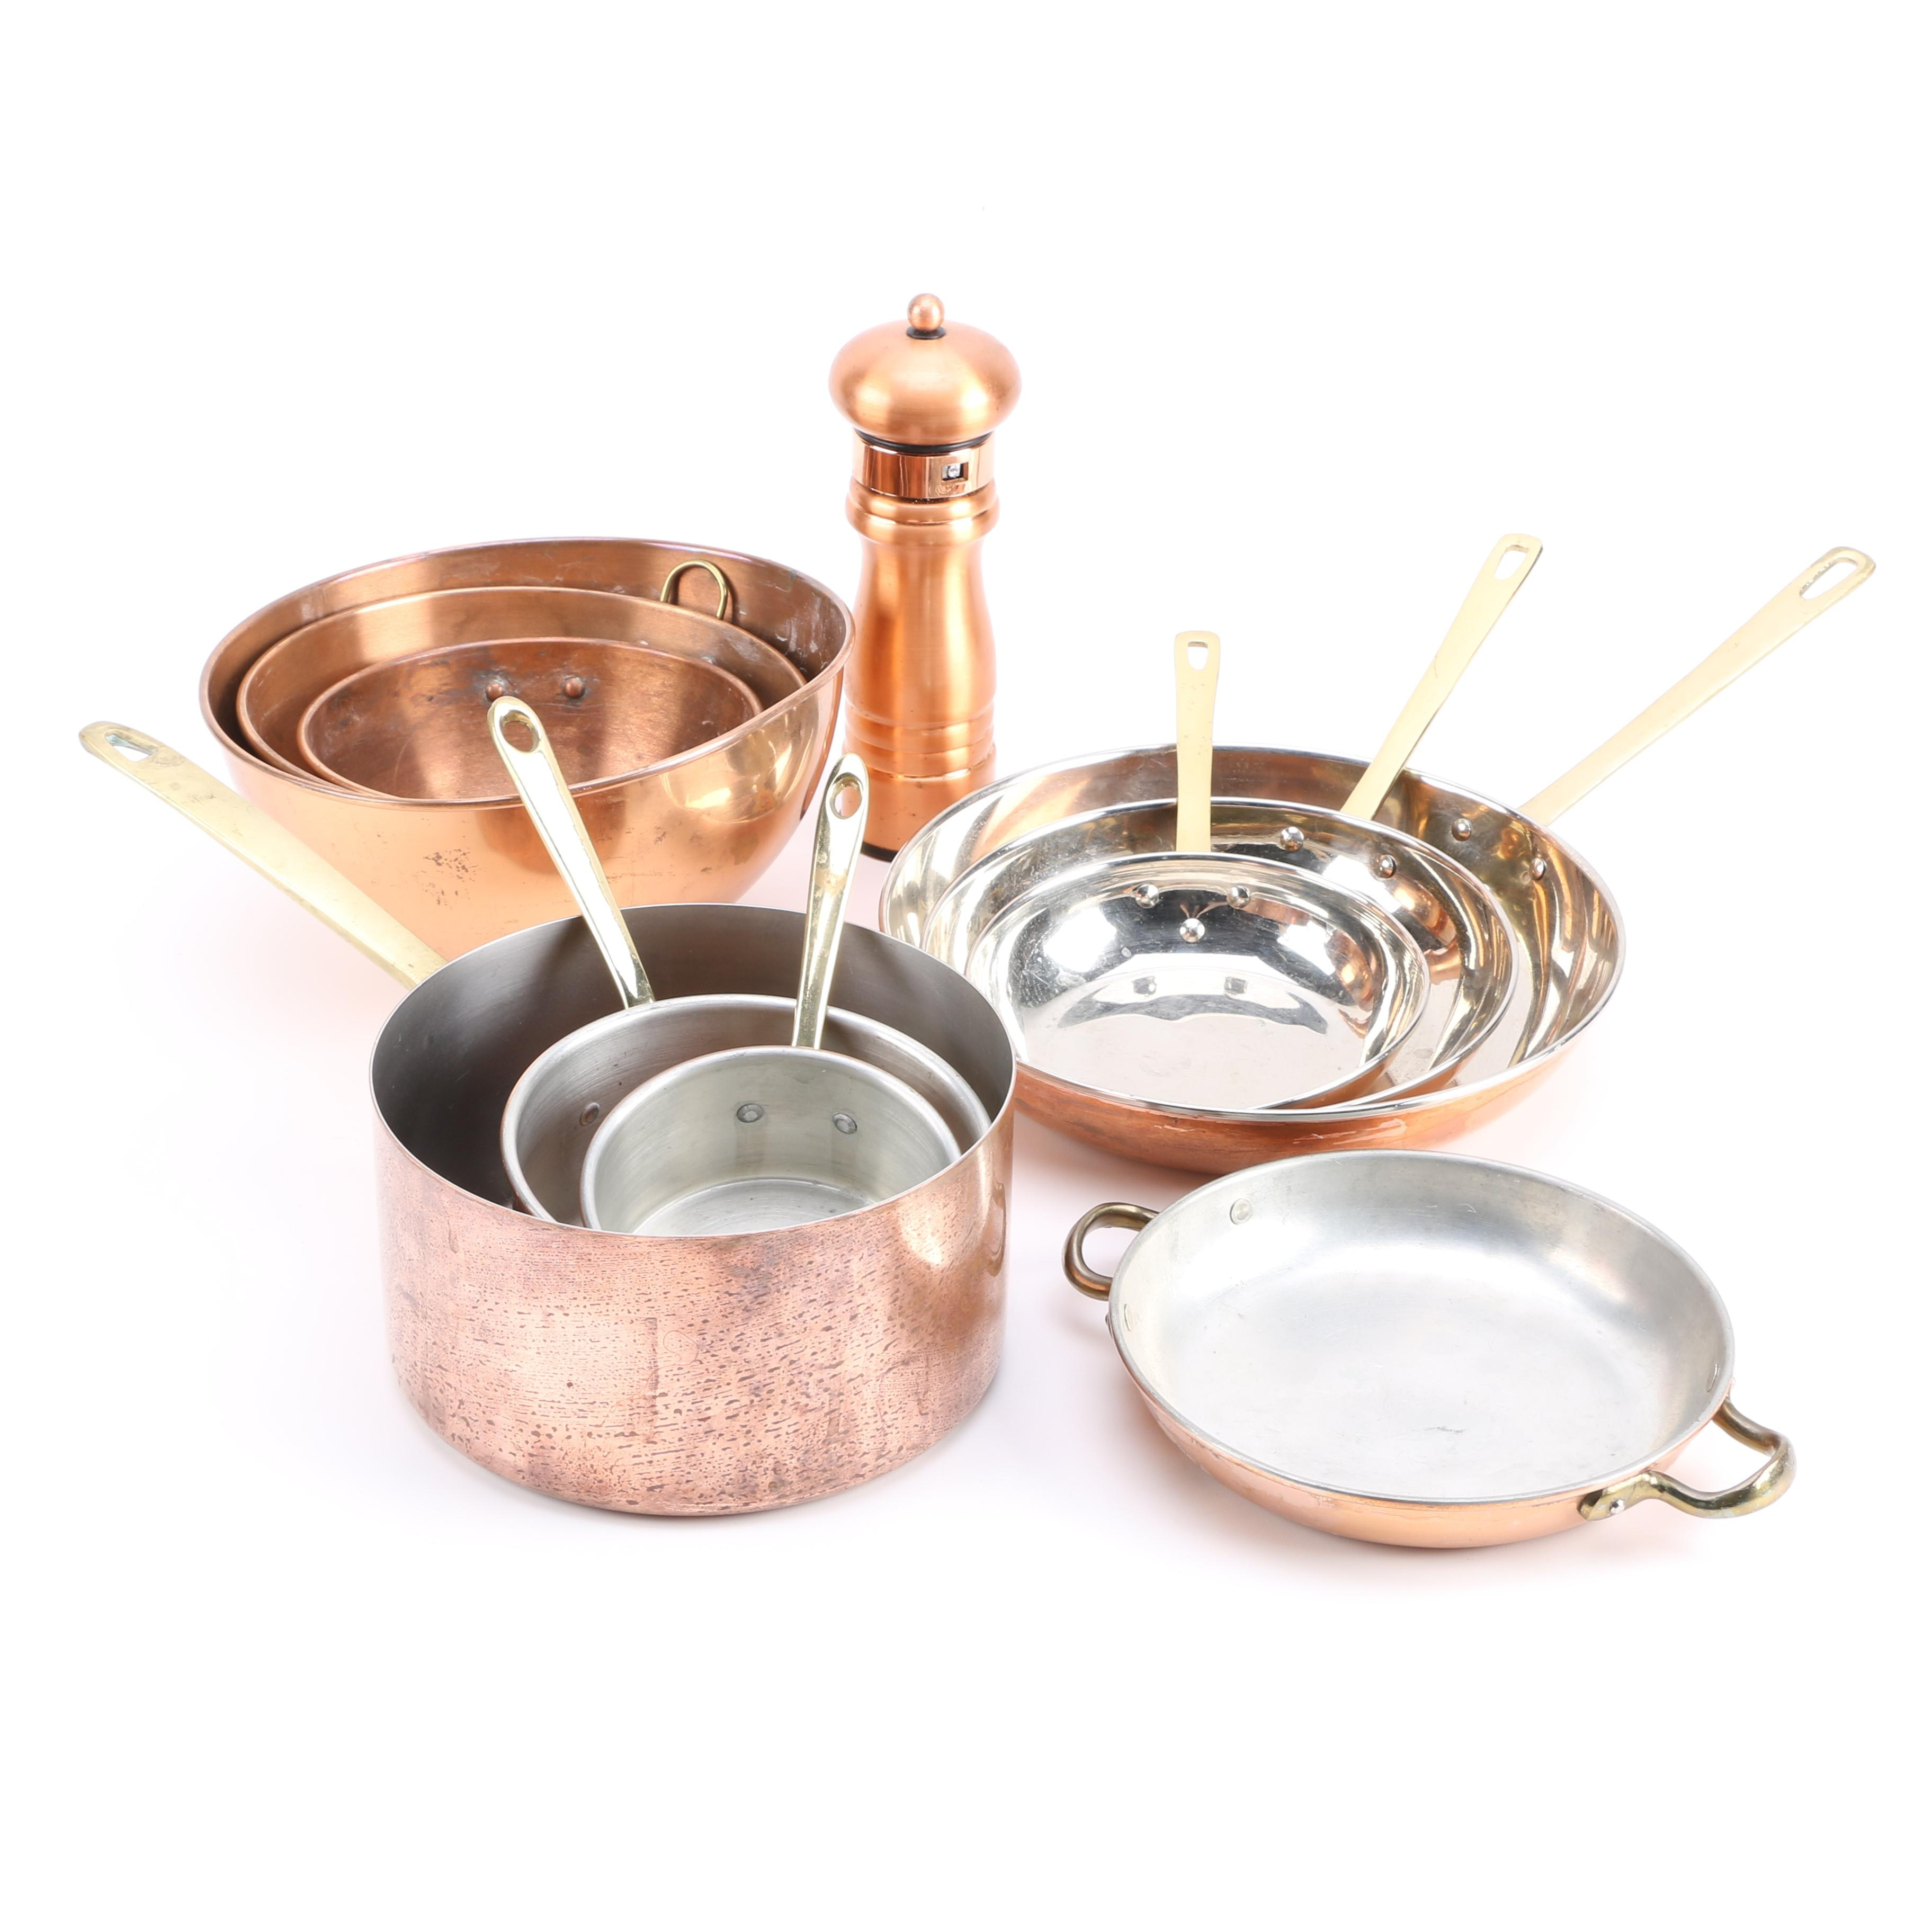 Copper Cookware and Kitchen Accessories